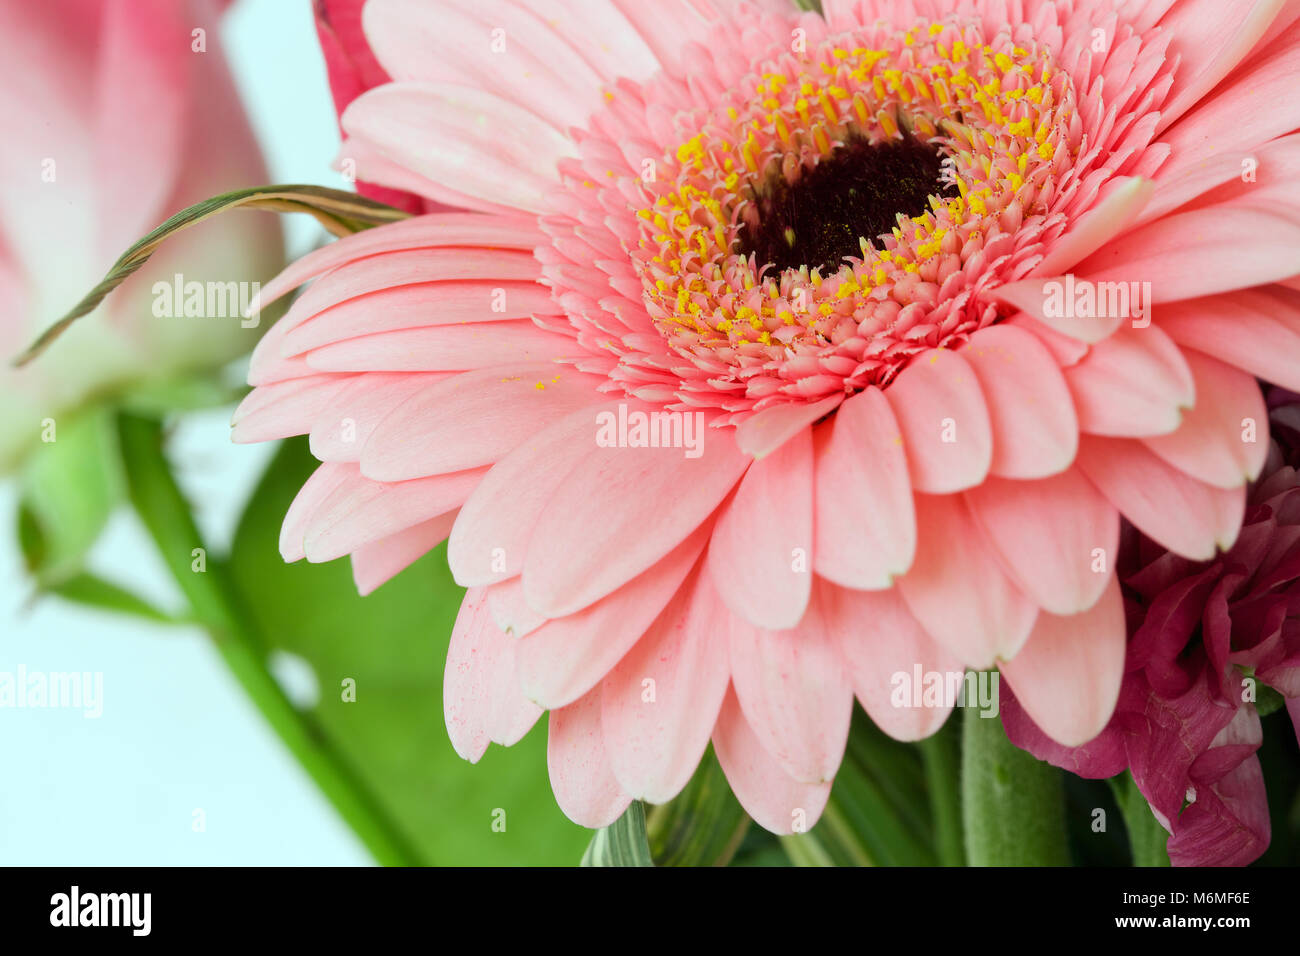 Long Thin Petals Stock Photos Long Thin Petals Stock Images Alamy